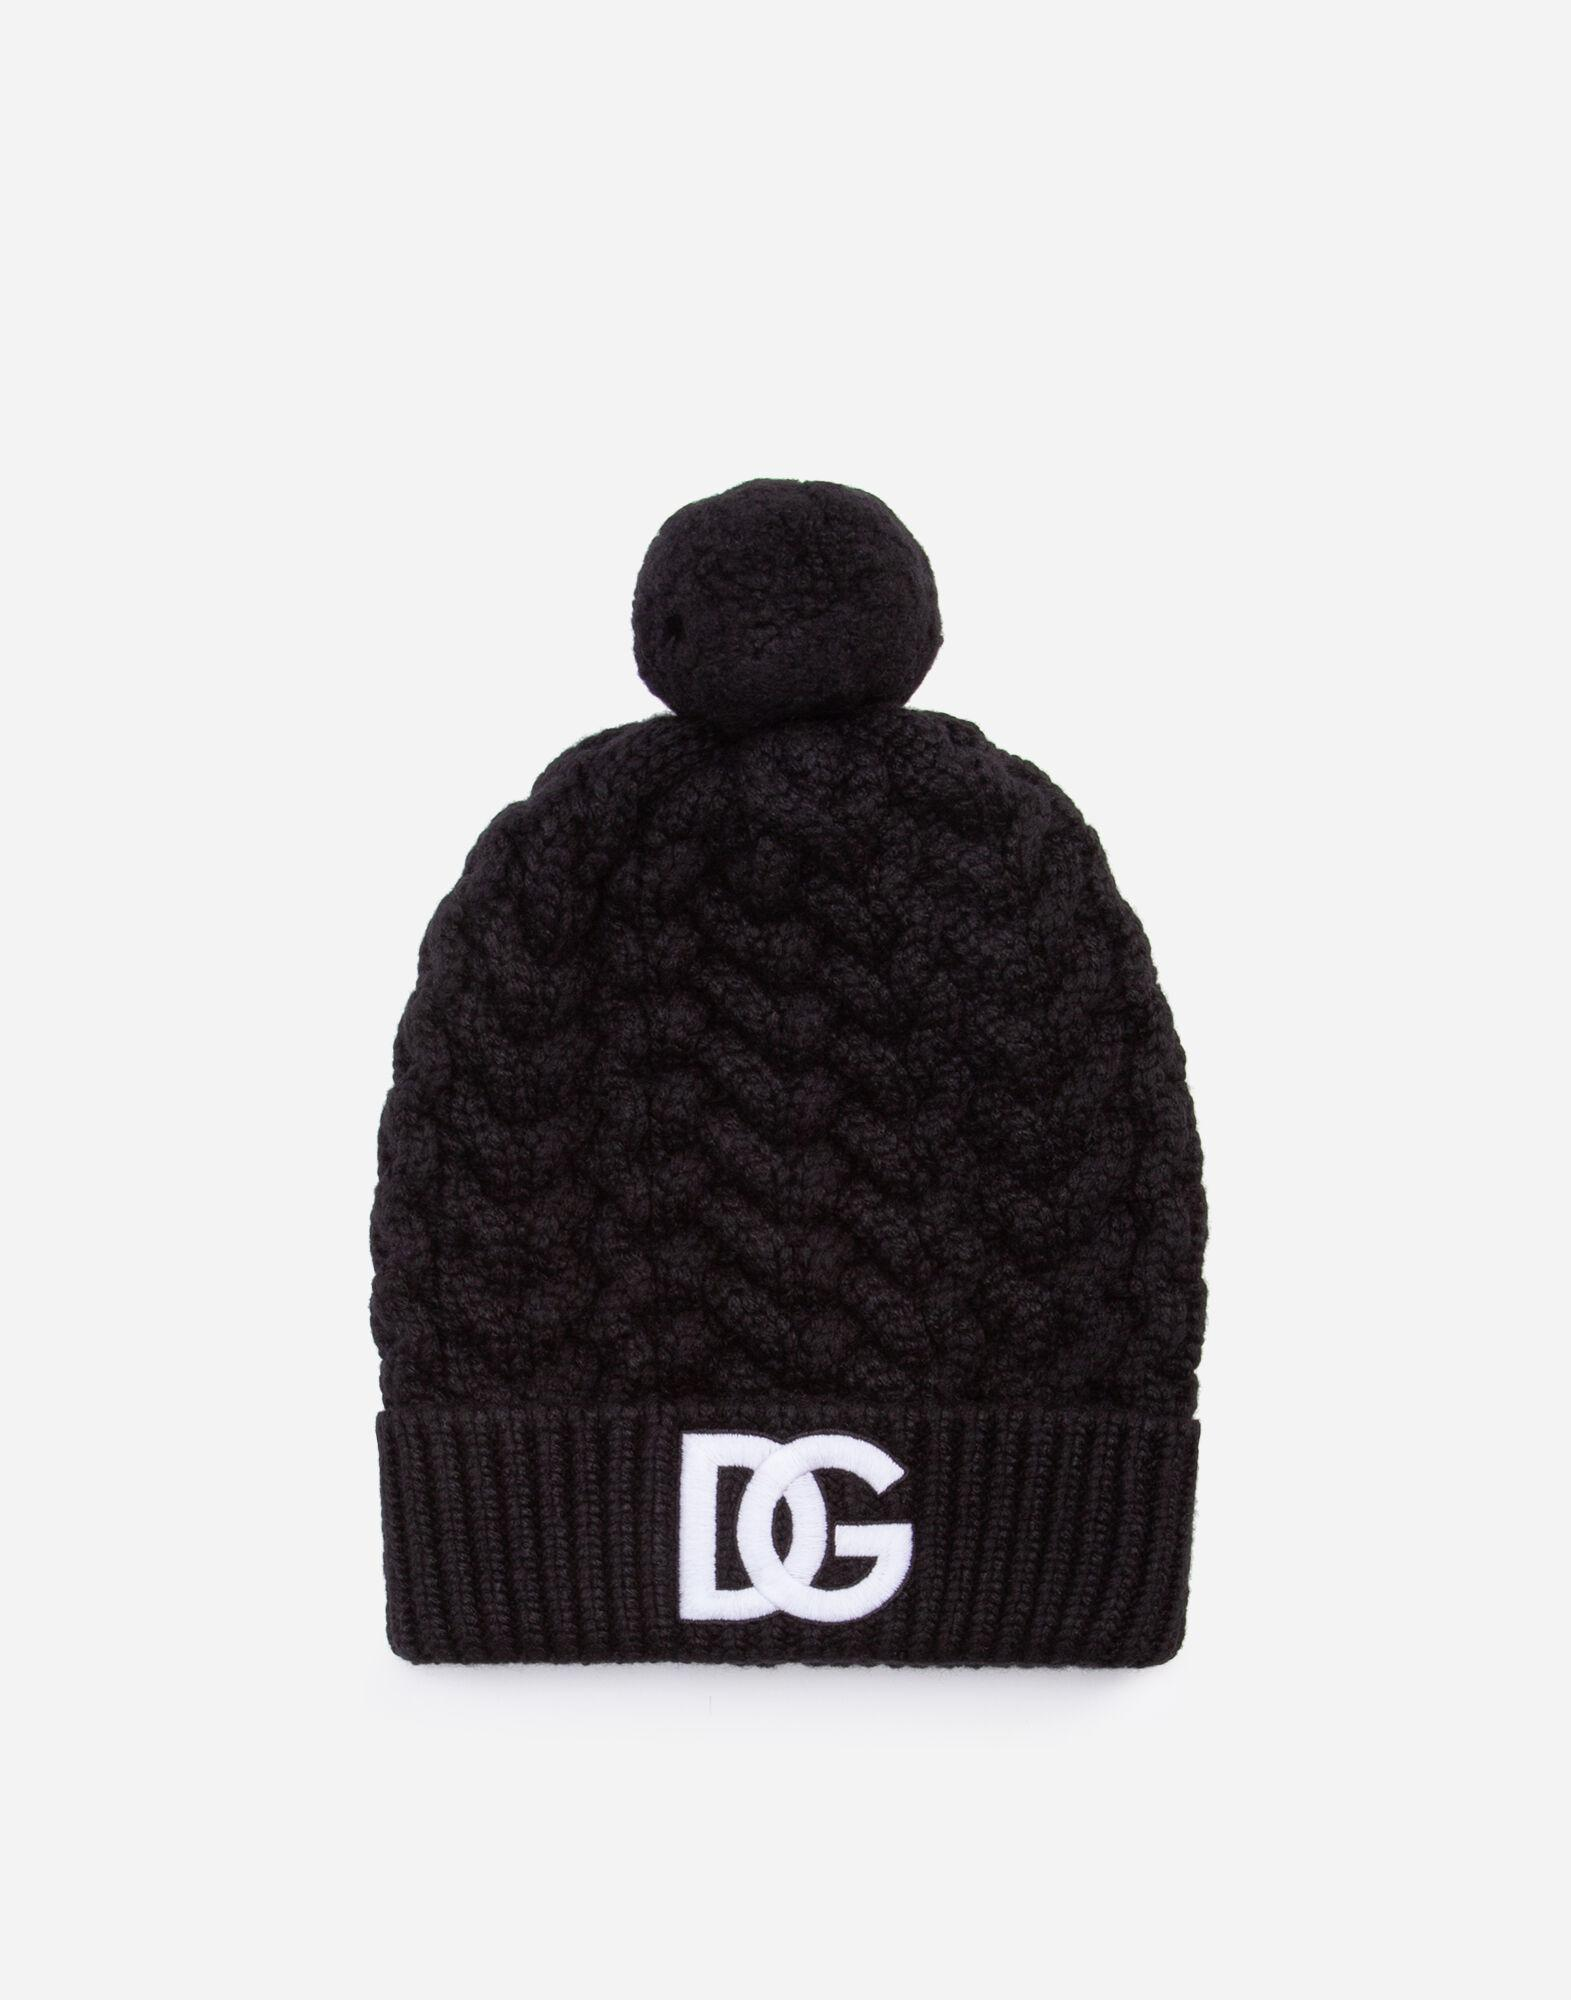 Wool hat with logo embroidery